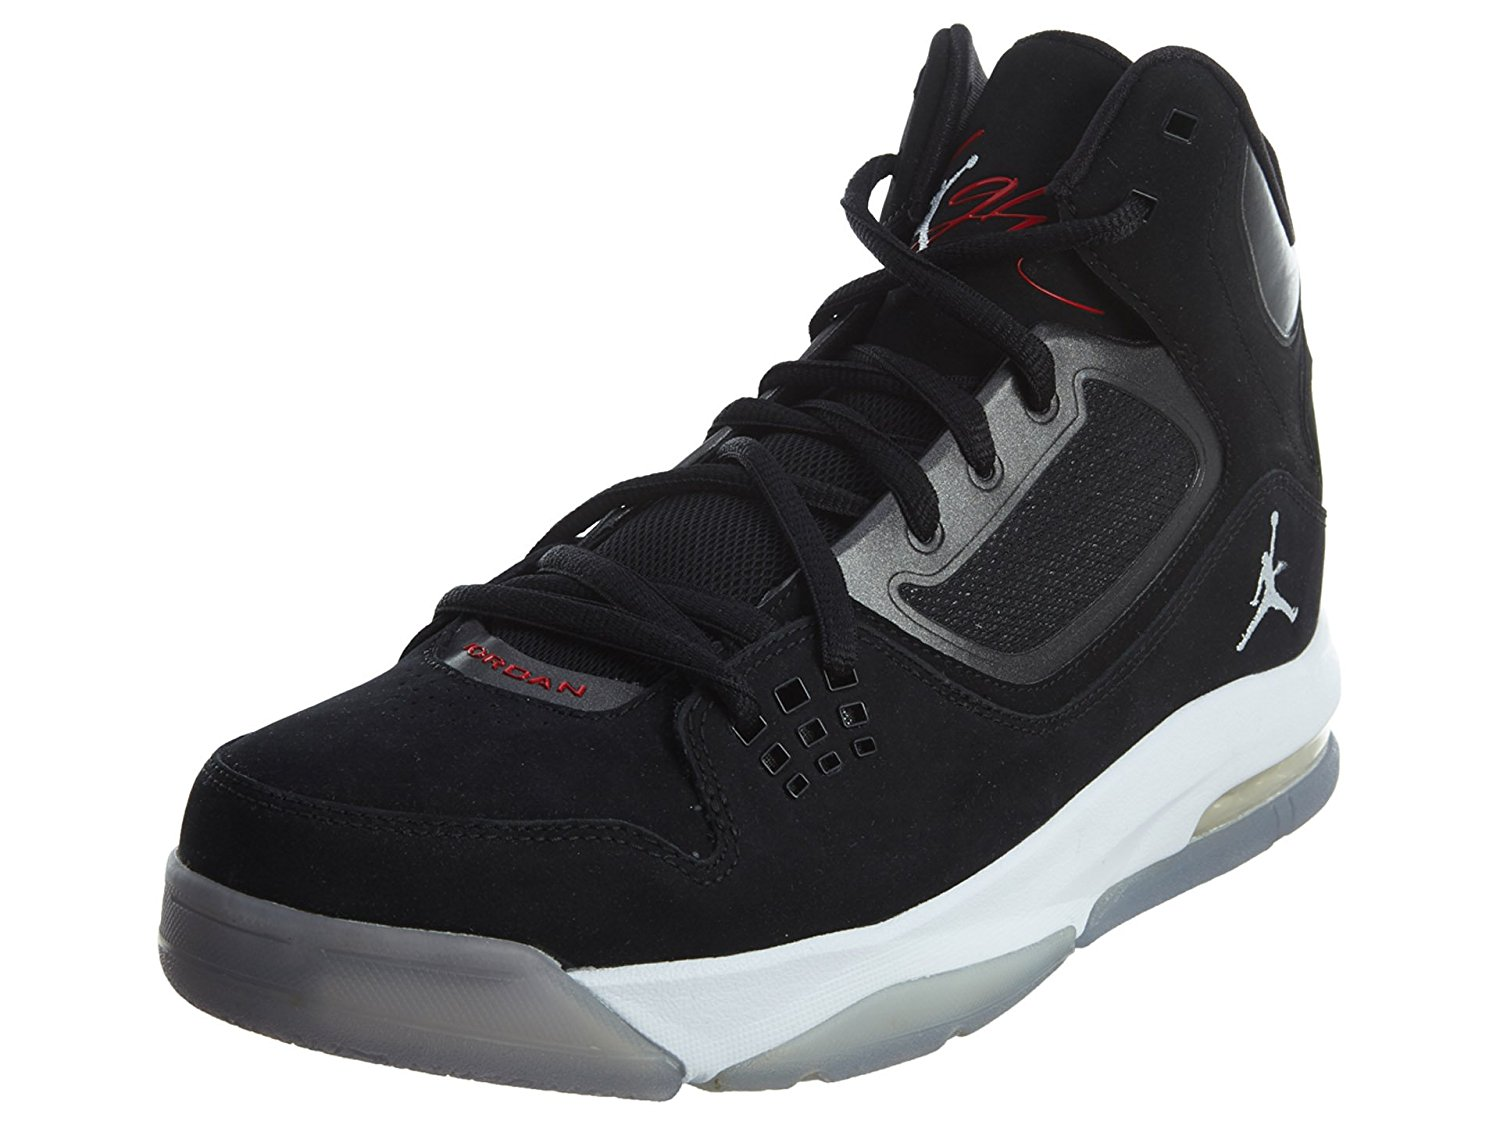 37d1ea7f92c Buy new  140 Air Jordan Flight 23 RST Low Black 525512-001 ...